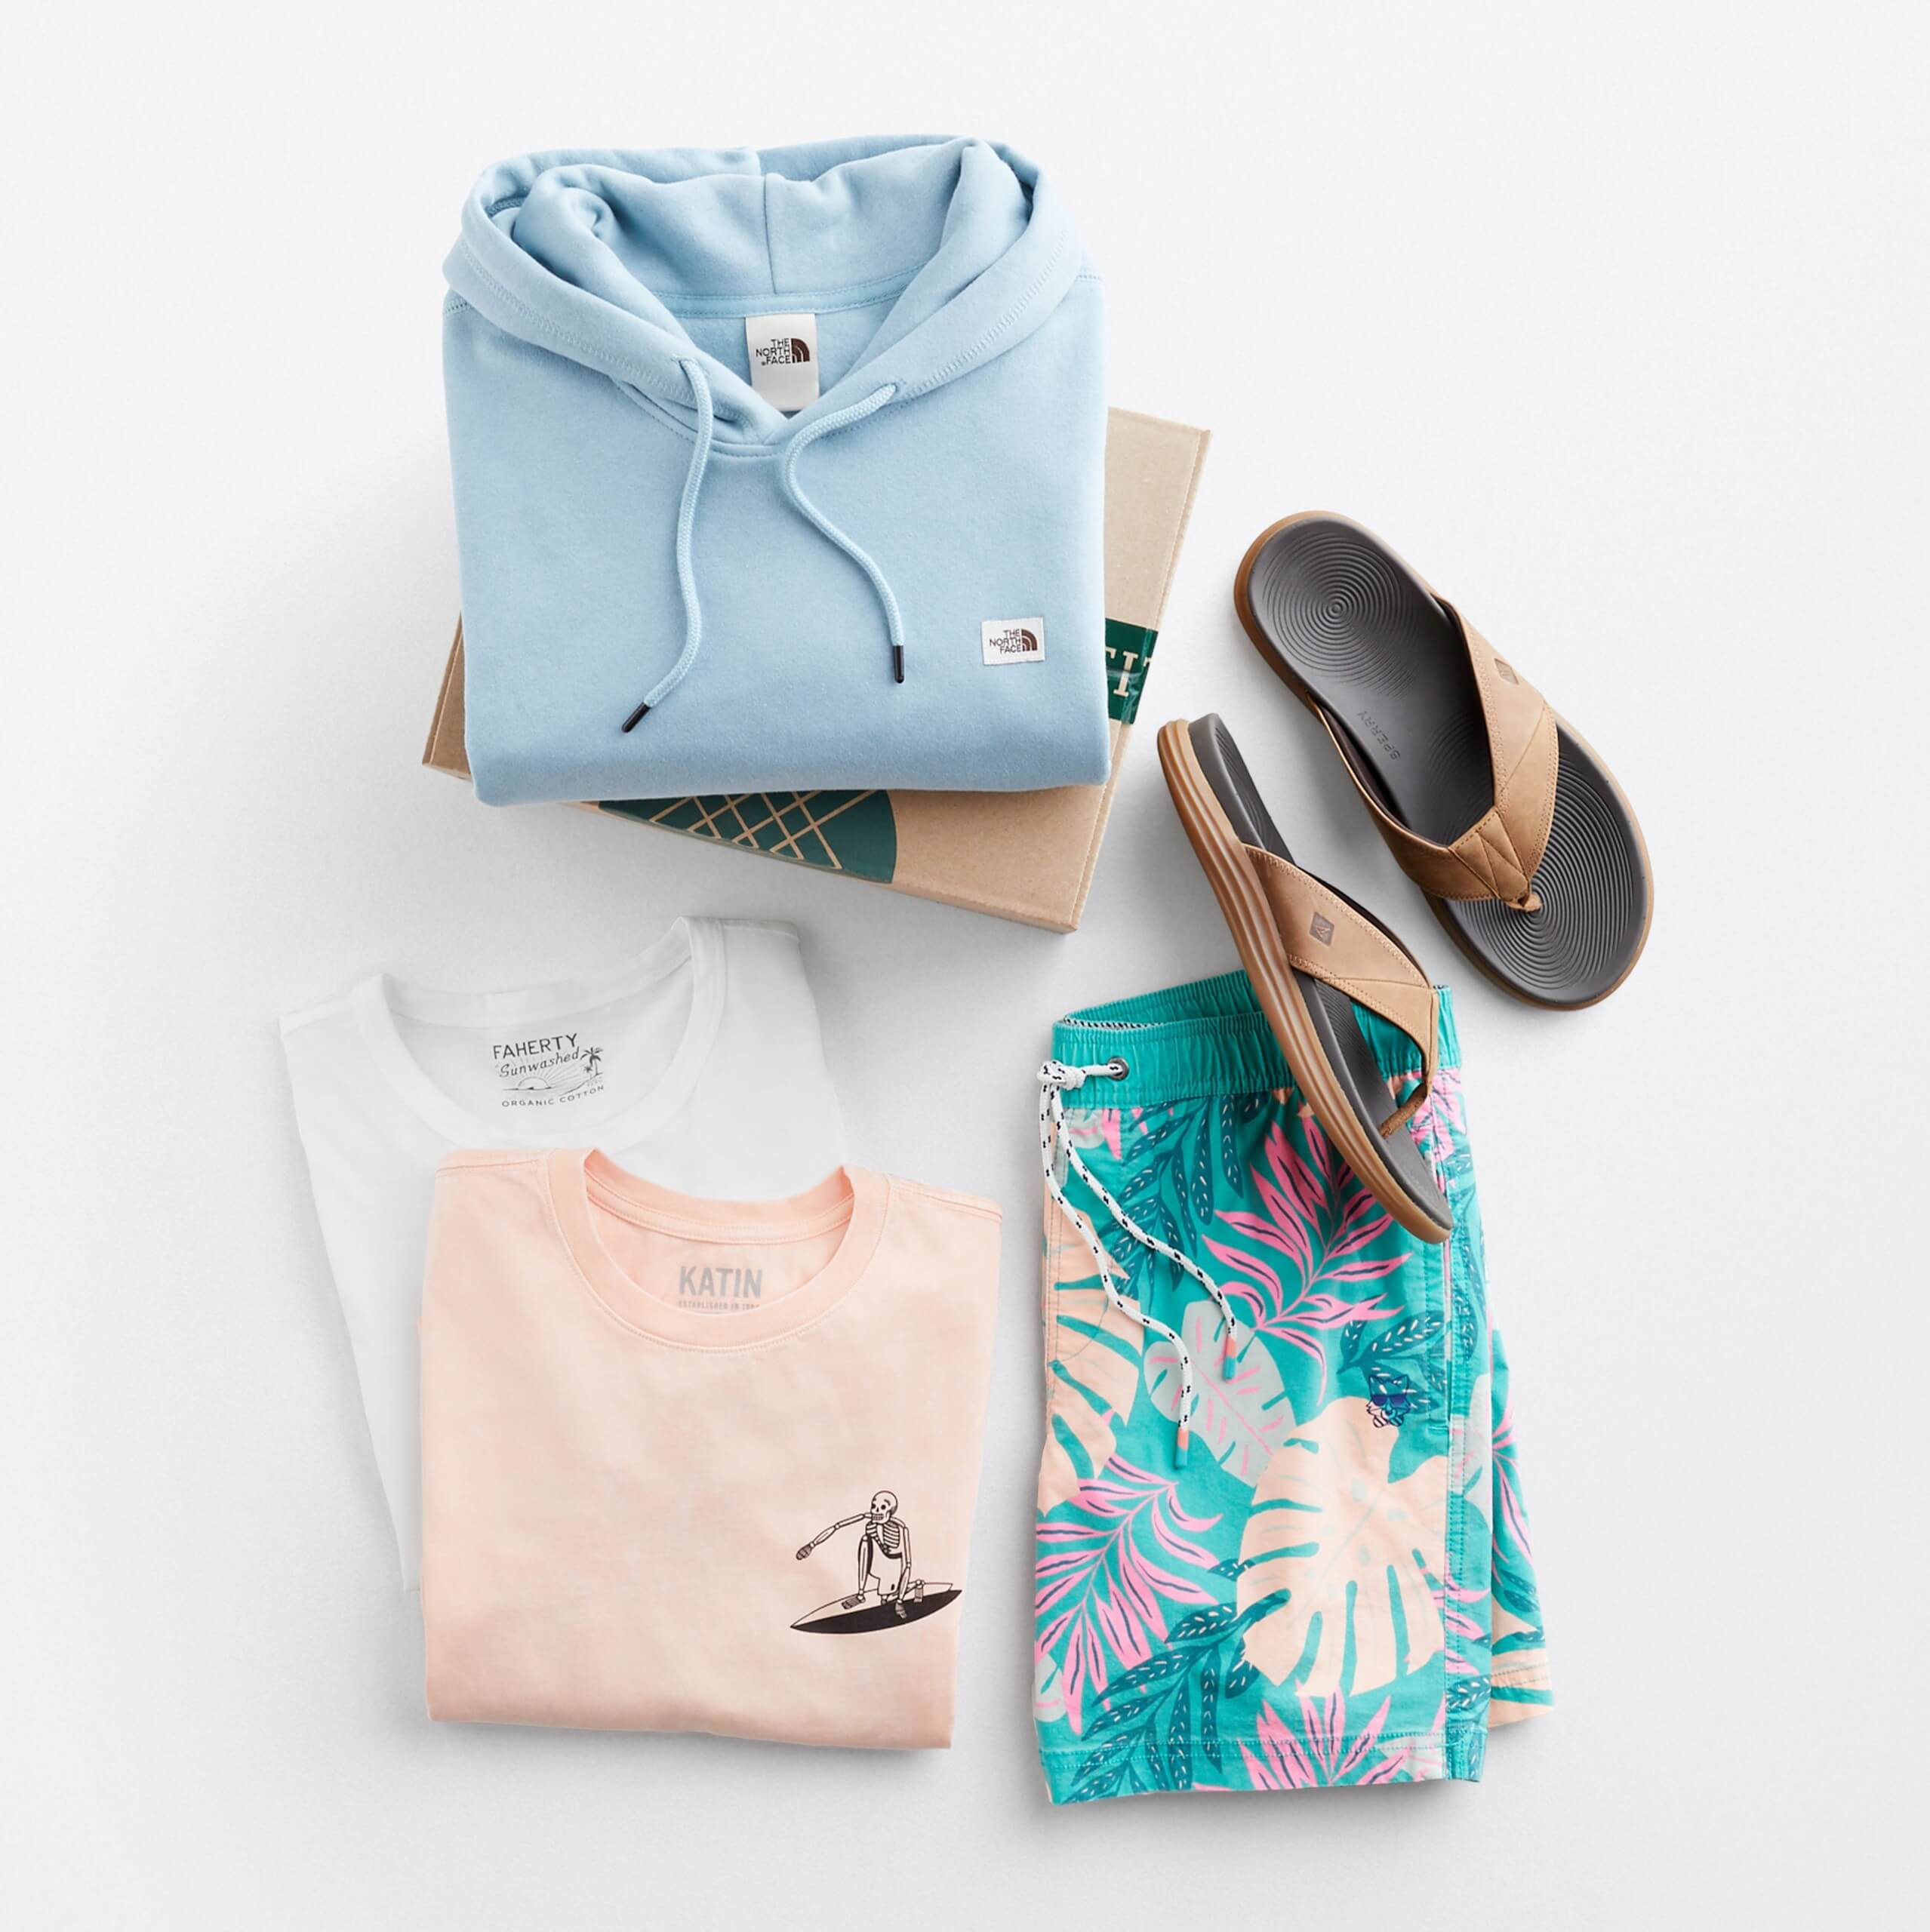 Stitch Fix Men's outfit laydown featuring a light blue hoodie on a Stitch Fix delivery box, next to tan flip flop sandals, tropical print shorts and two crew neck t-shirts in pink and white.